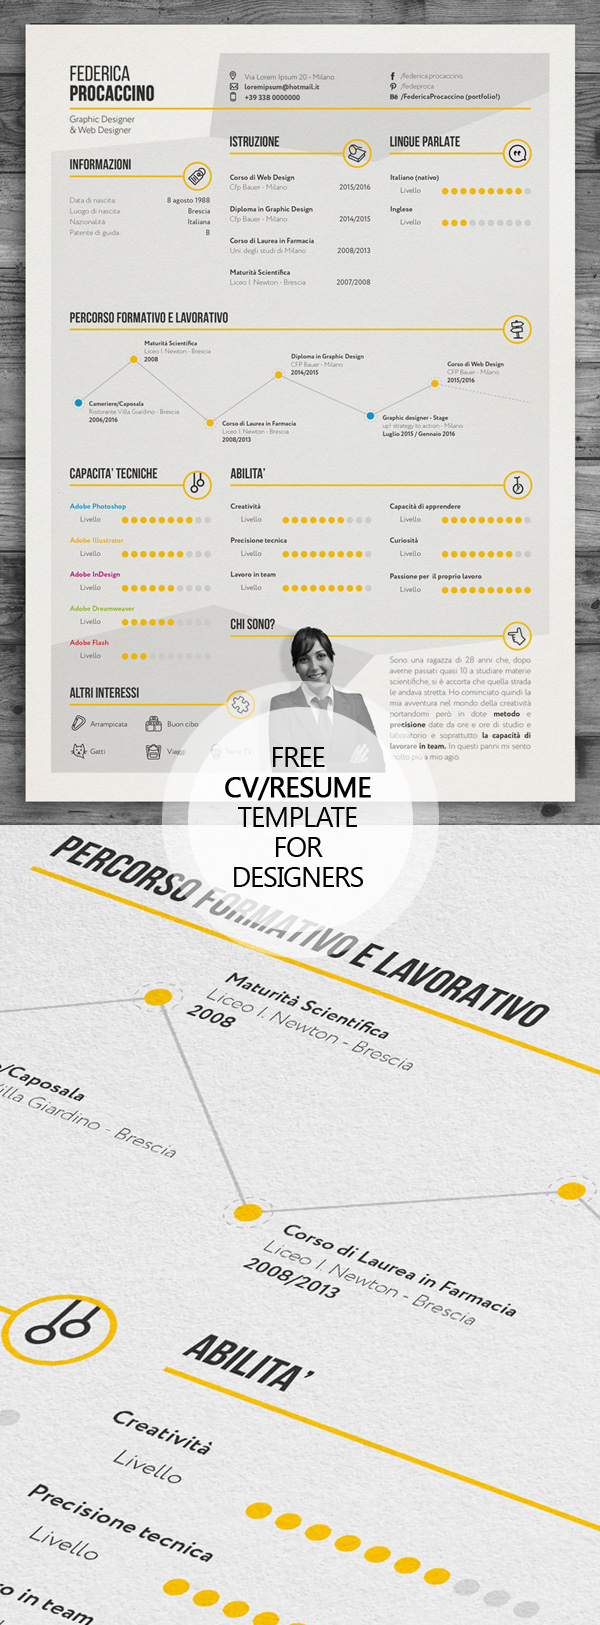 psd cv resume and cover letter templates bies creative lancer designer resume template psd